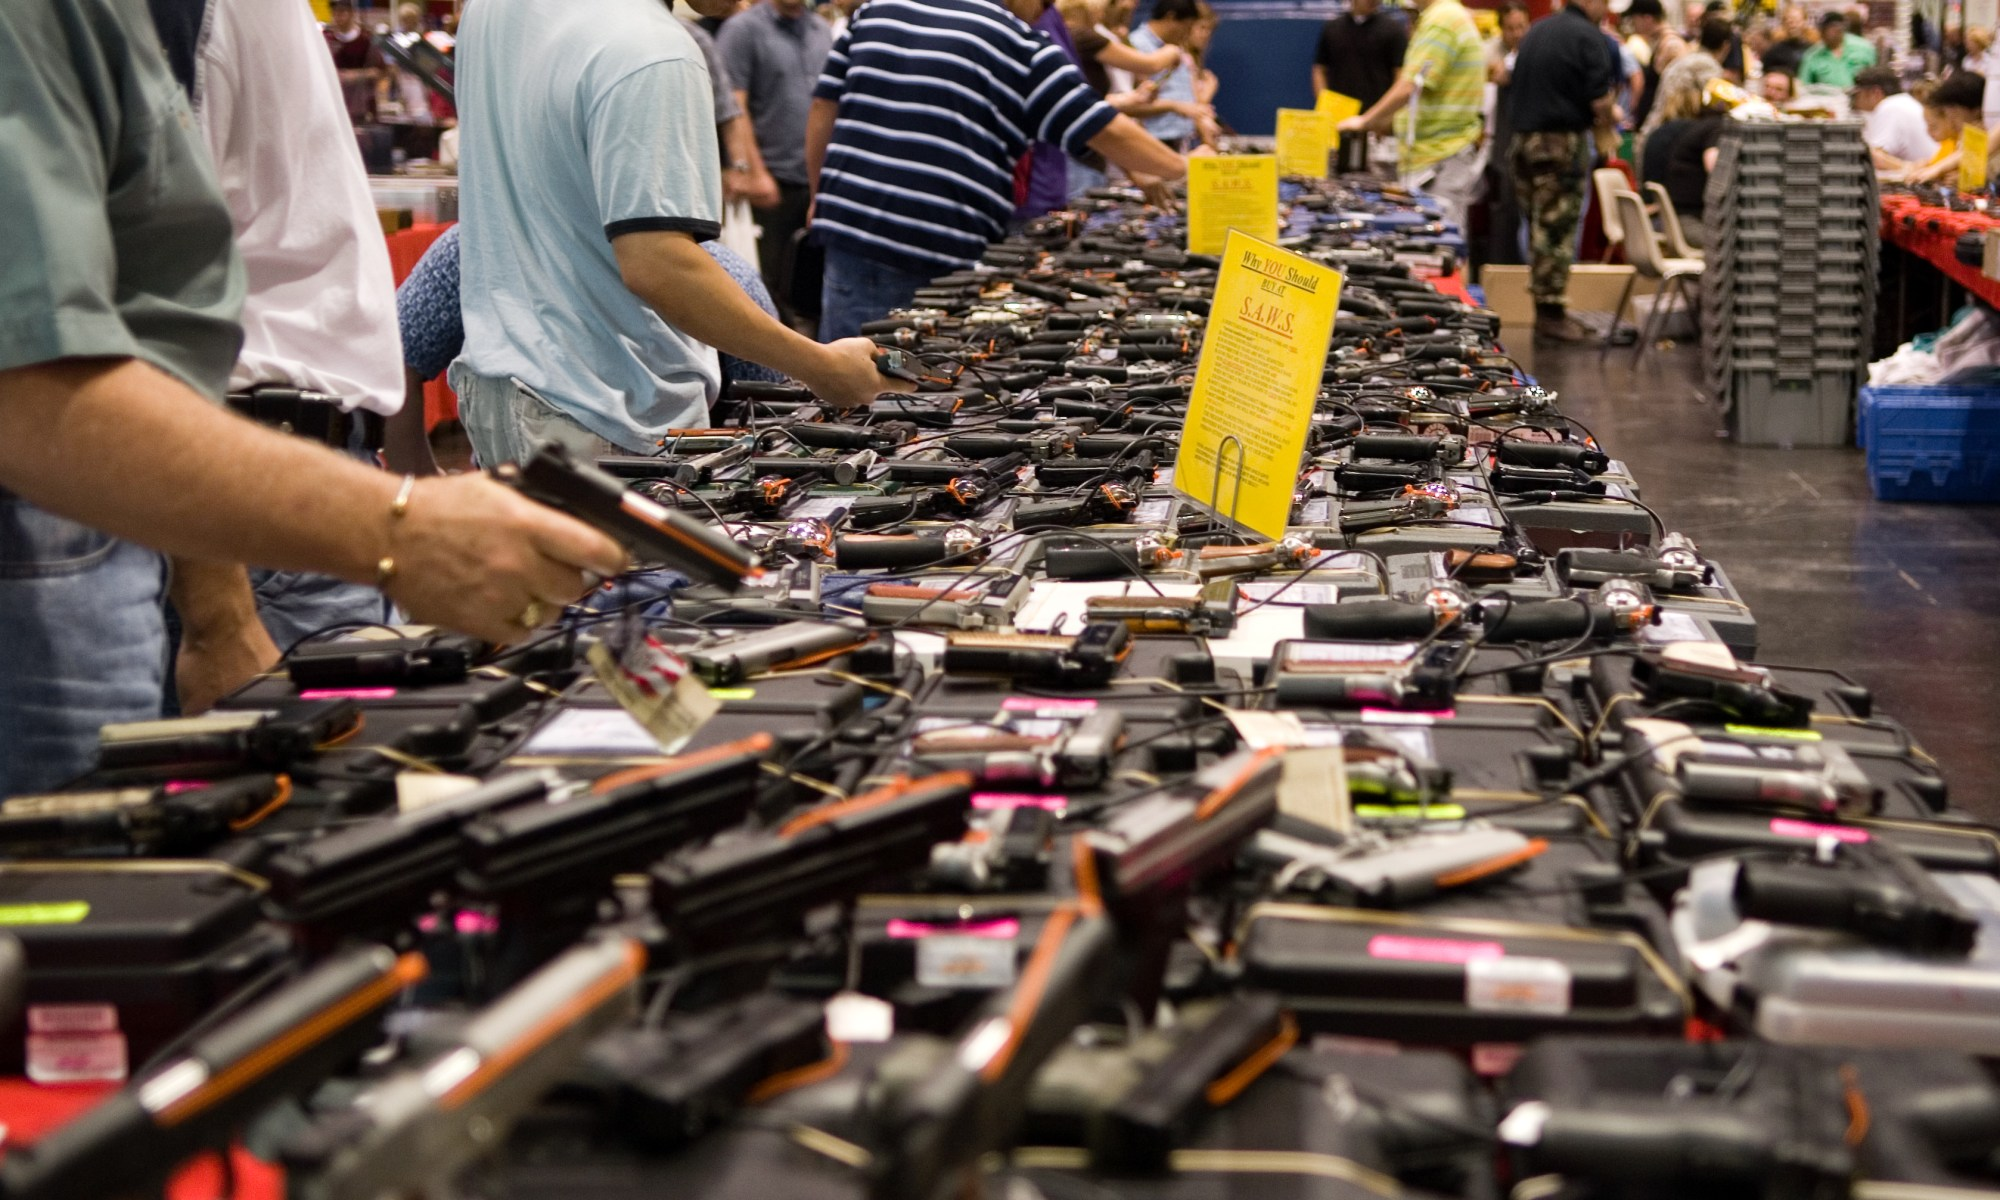 Houston Gun Show at the George R Brown Convention Centre. Creative Commons licenced image